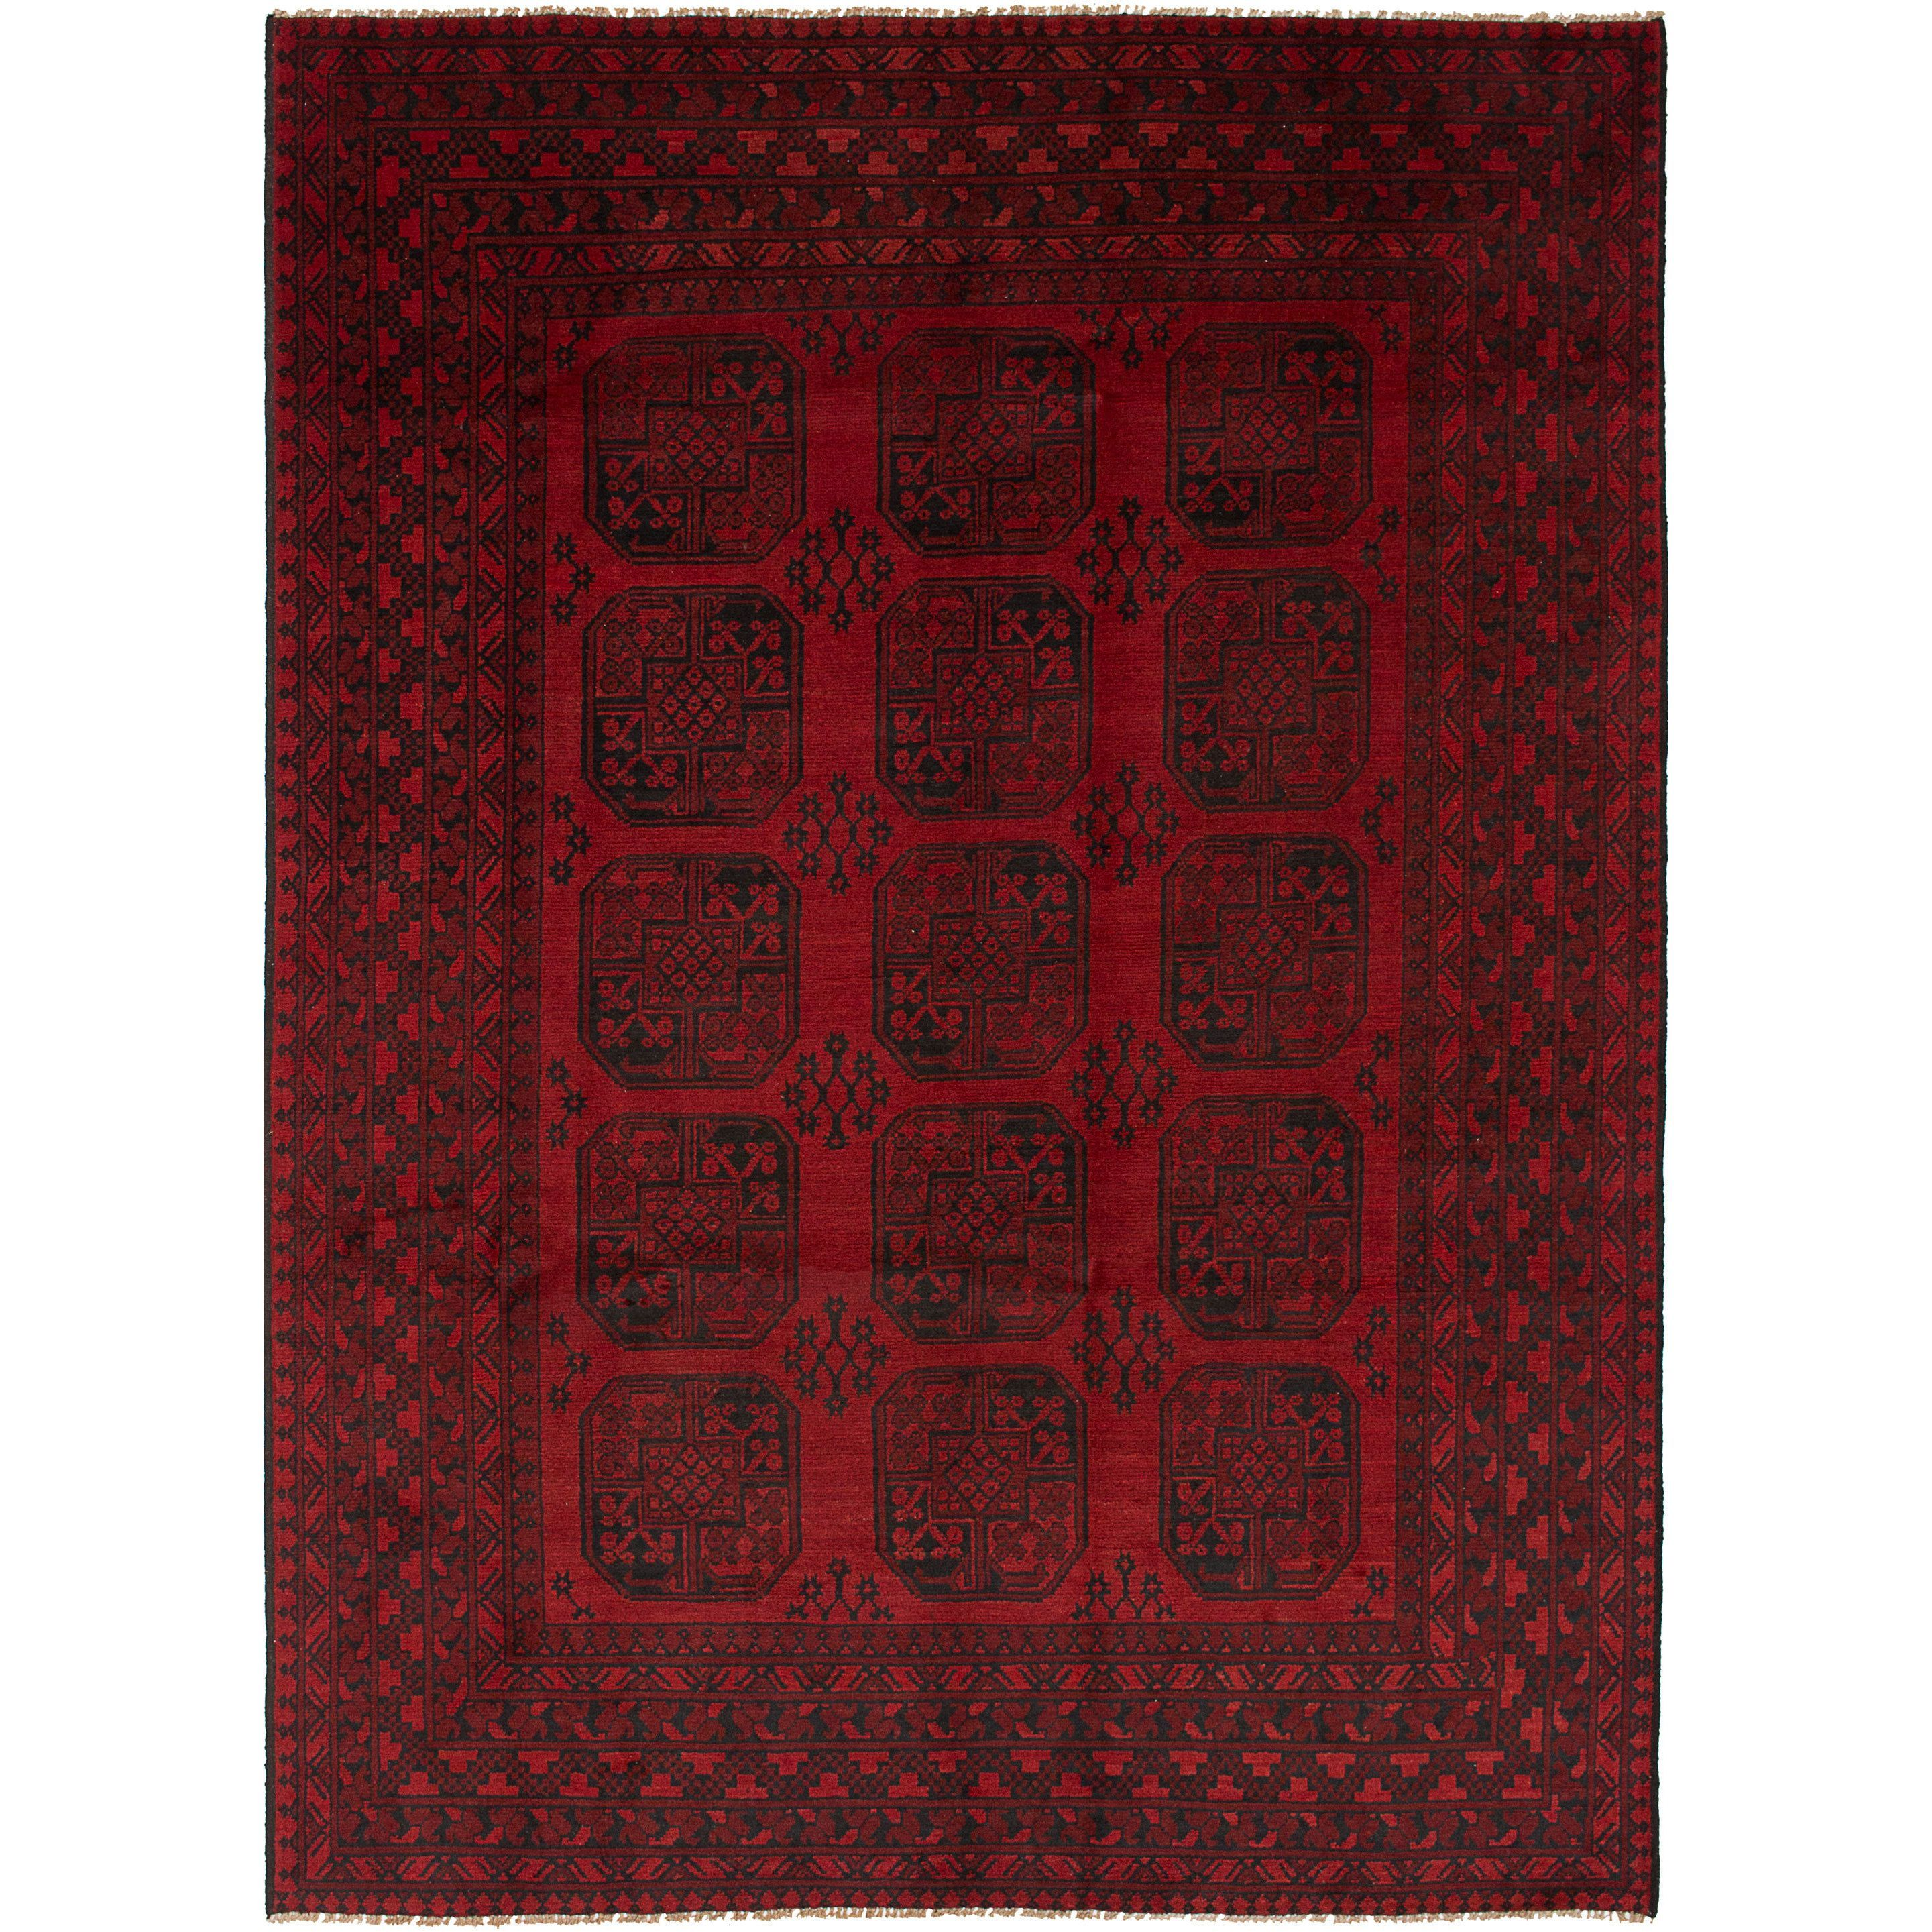 eCarpetGallery Hand-Knotted Khal Mohammadi Red Wool Rug (6'5 x 9'0) (Red Rug (6' x 9')), Size 6' x 9' (Cotton, Border)